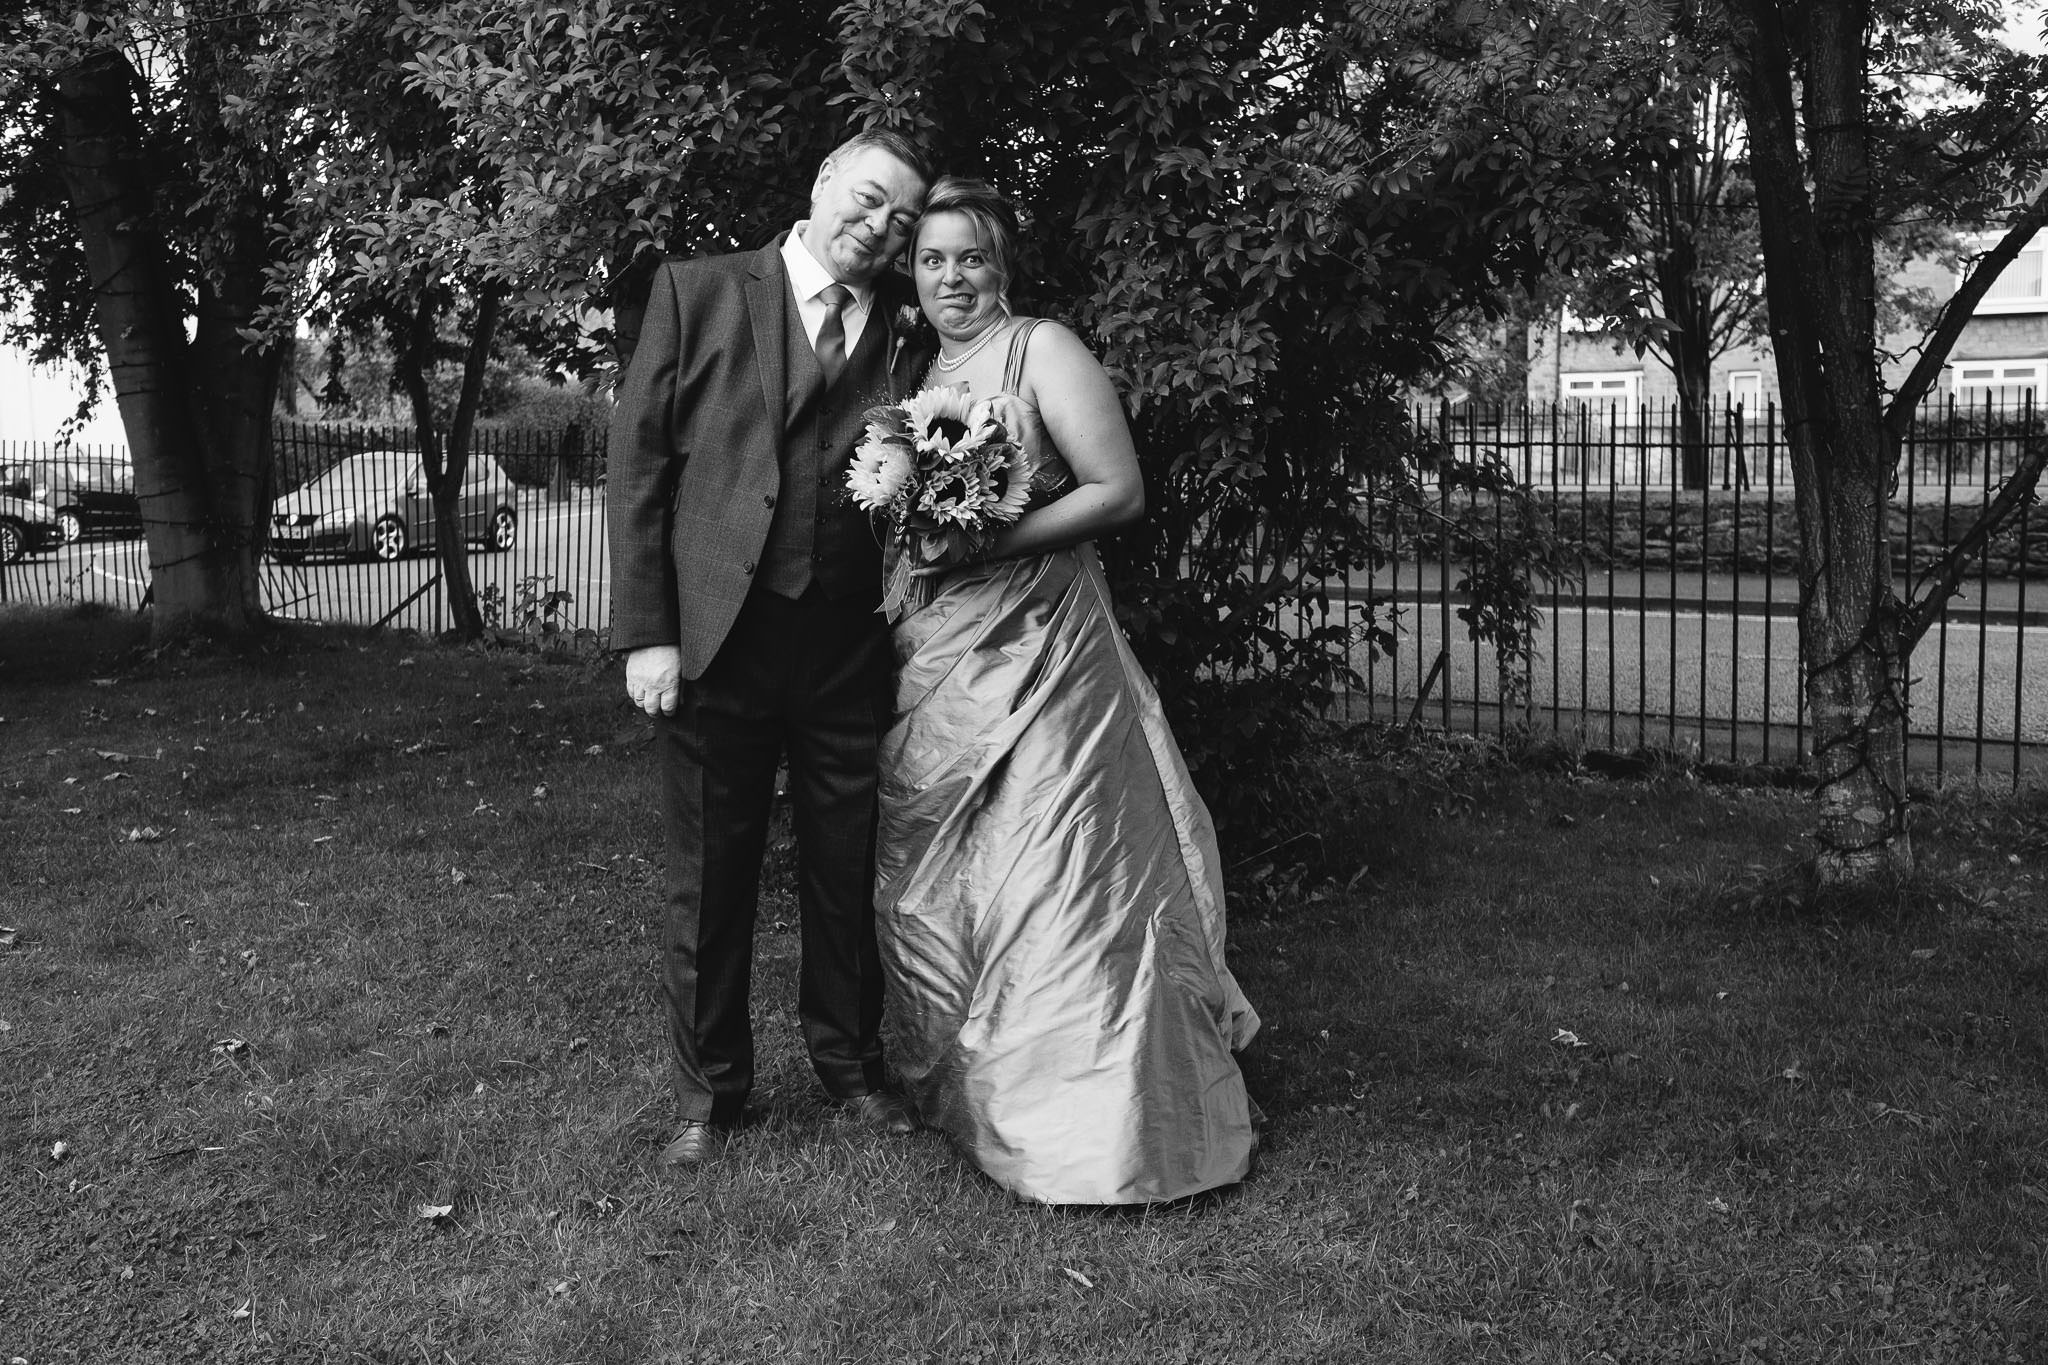 A black and white photo of the bride and her dad pulling funny faces before the wedding